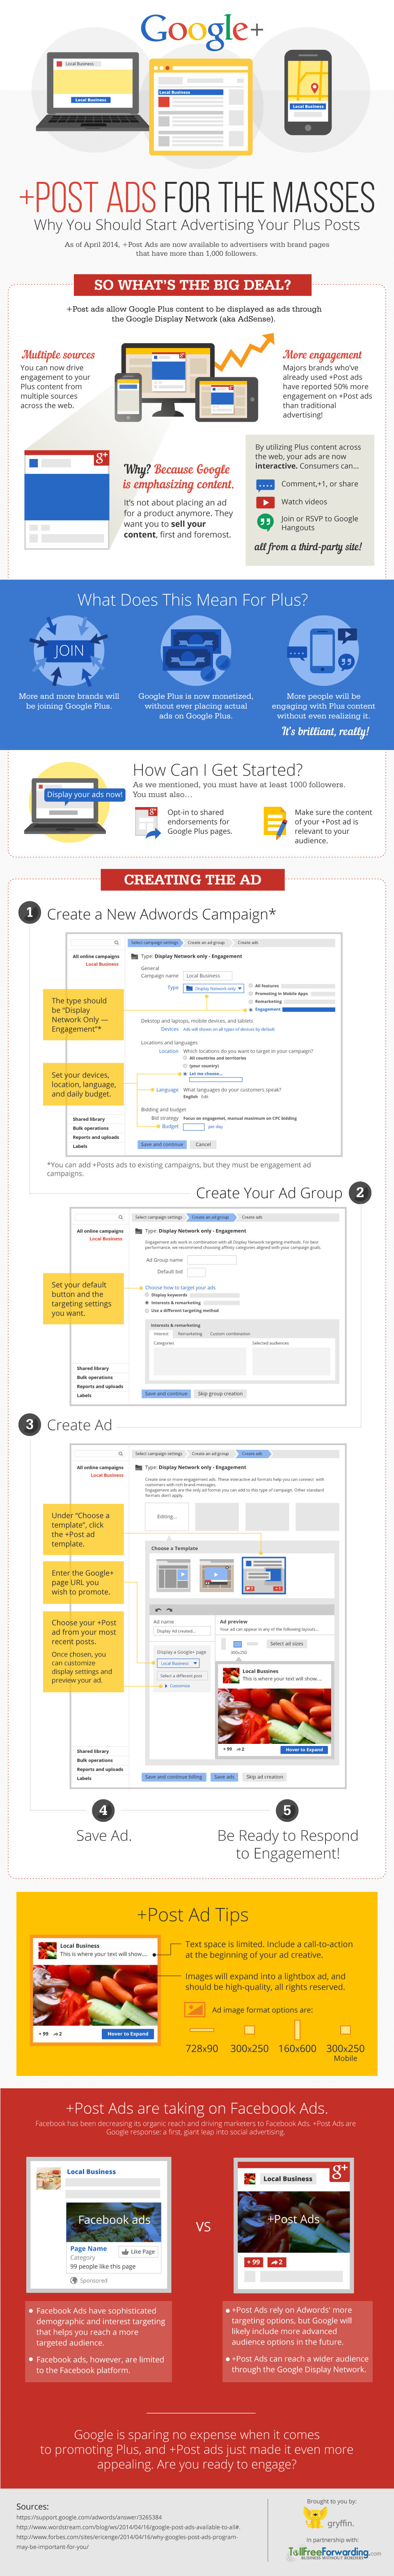 Infographic: GooglePlus +Post Ads For The Masses #infographic